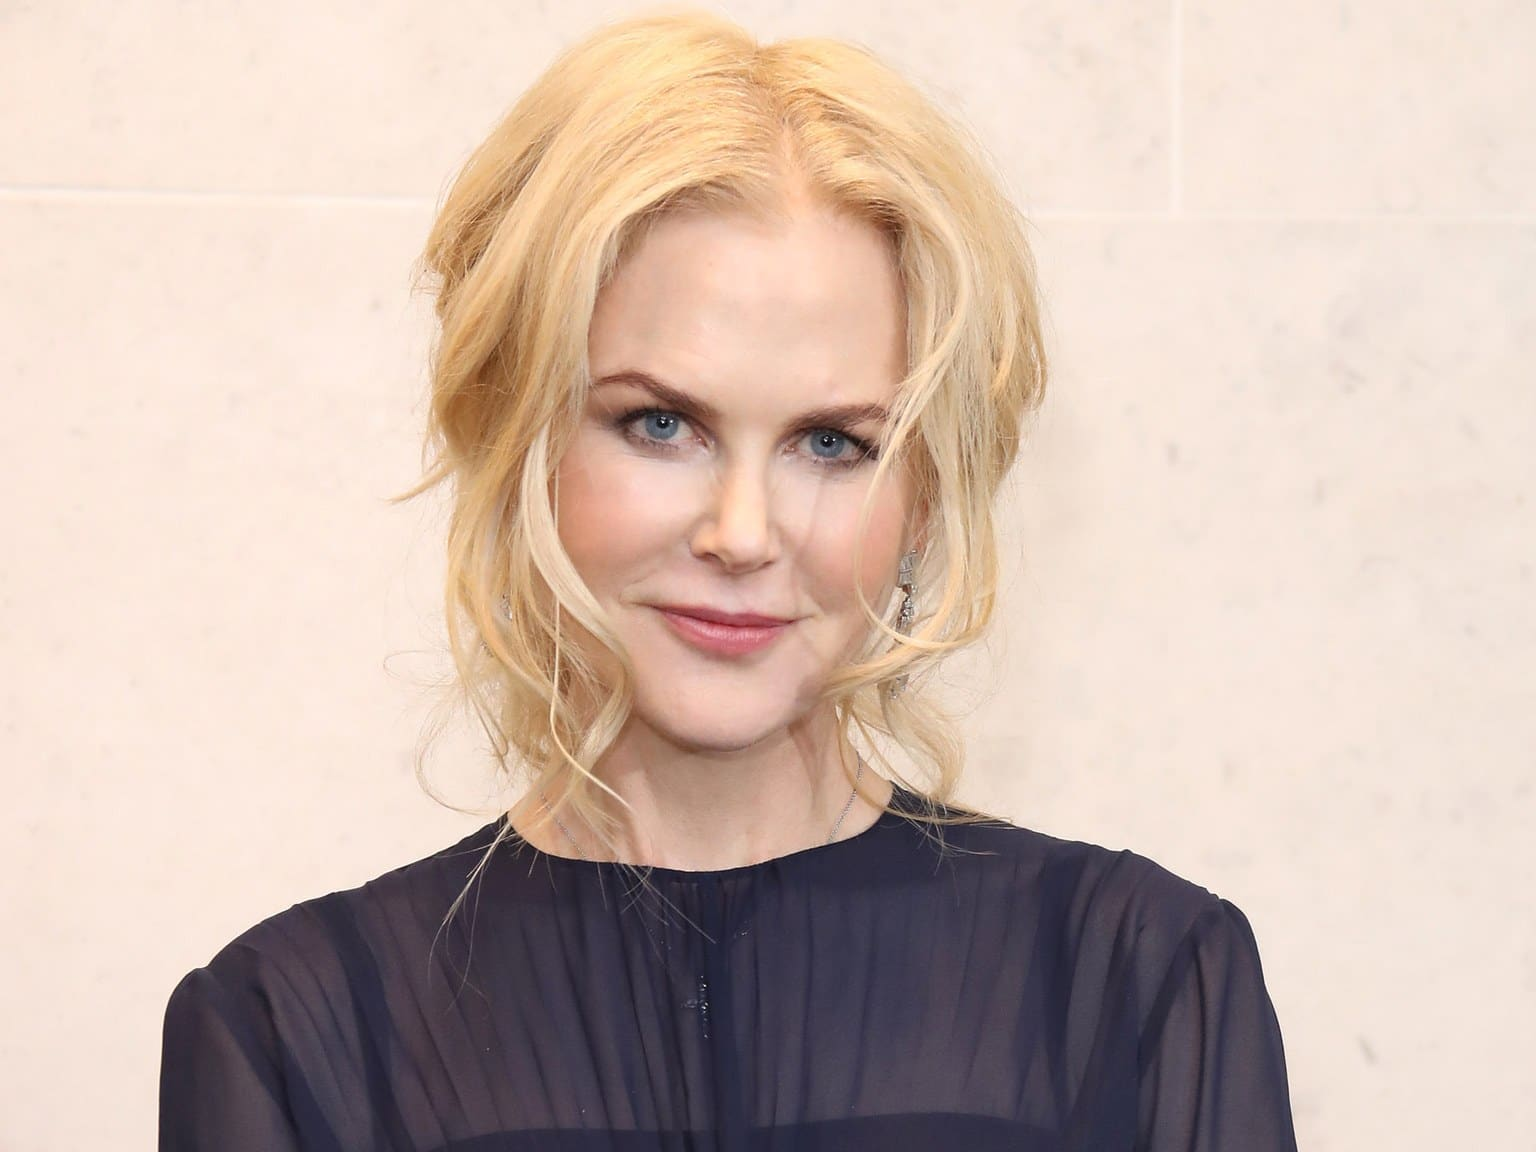 Nicole Kidman Australian, American Actress, Producer